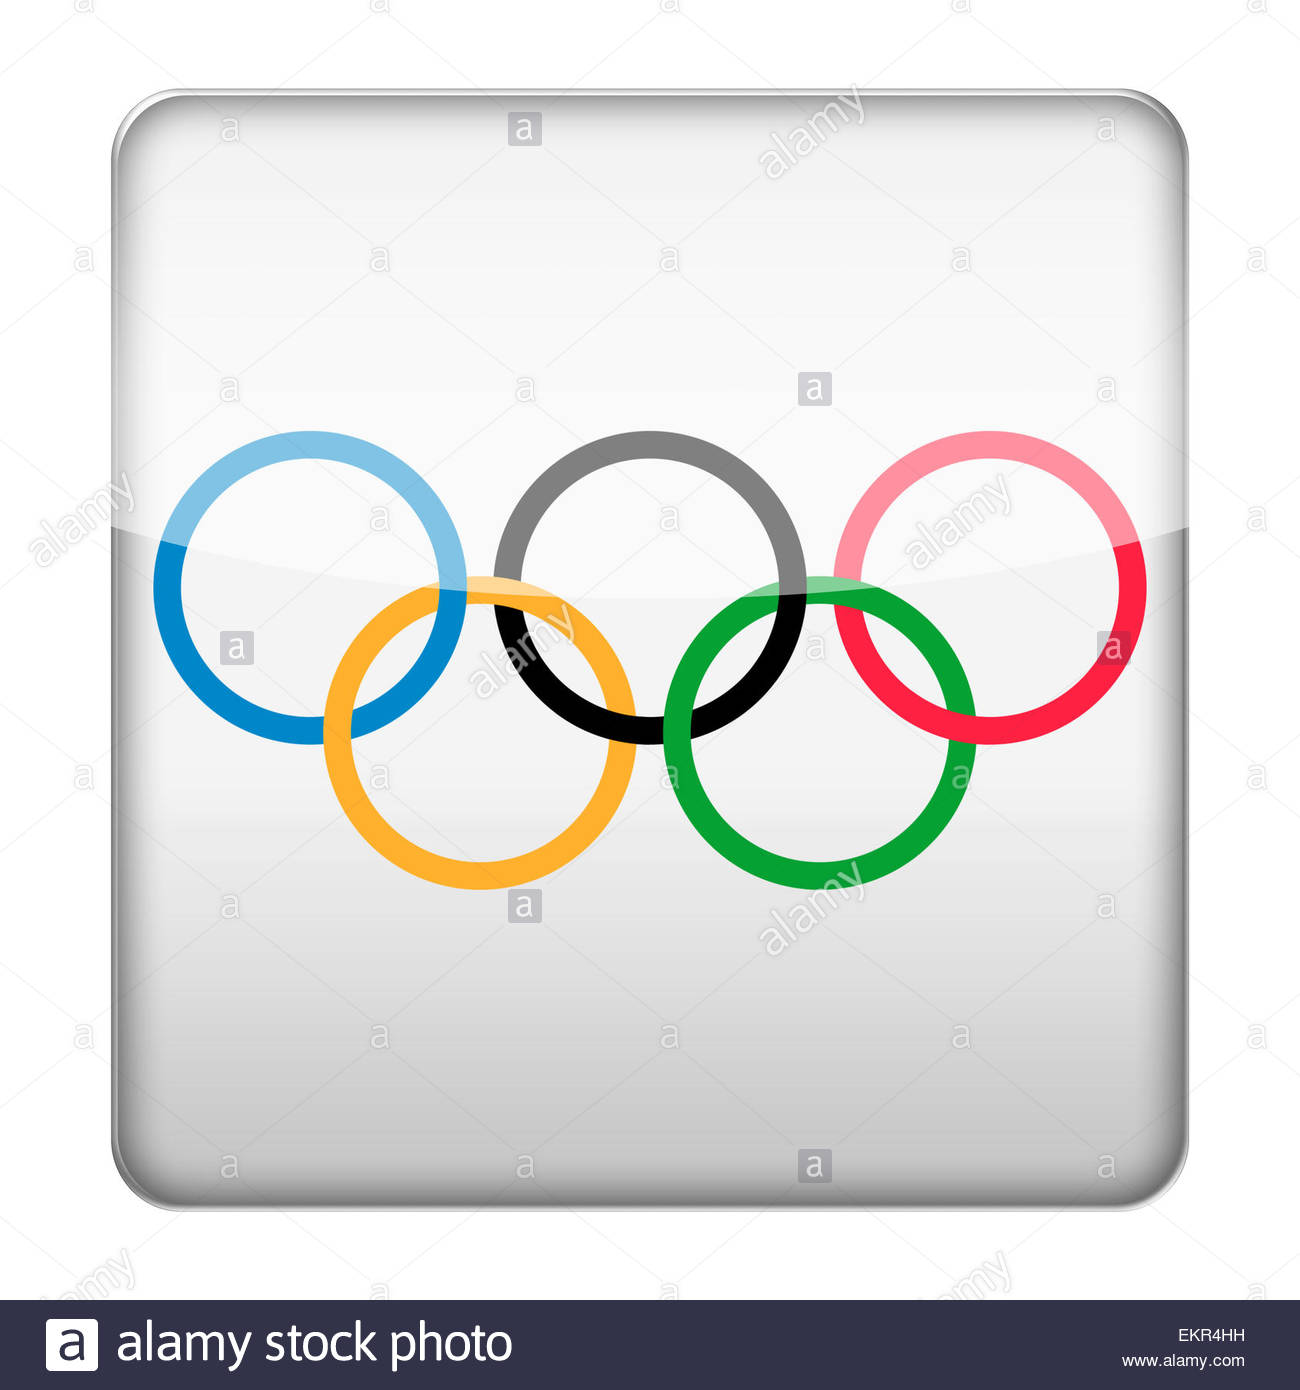 Olympic logo icon - Stock Image